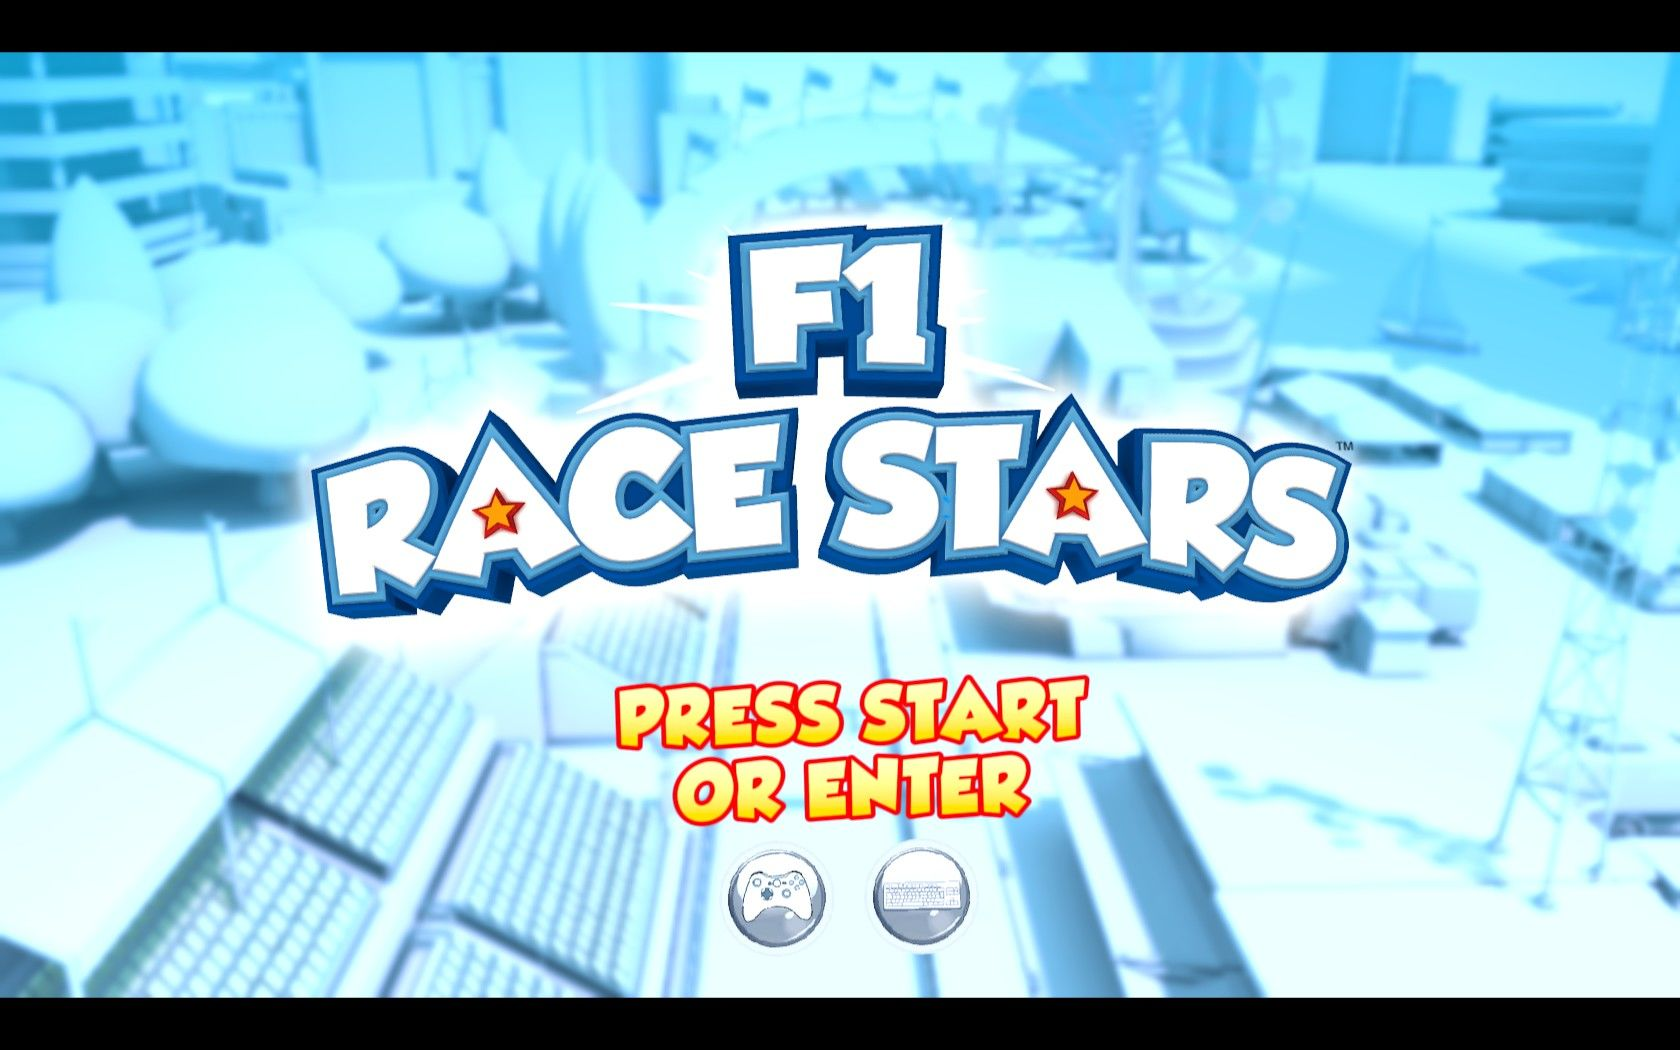 F1 Race Stars Windows Start Screen